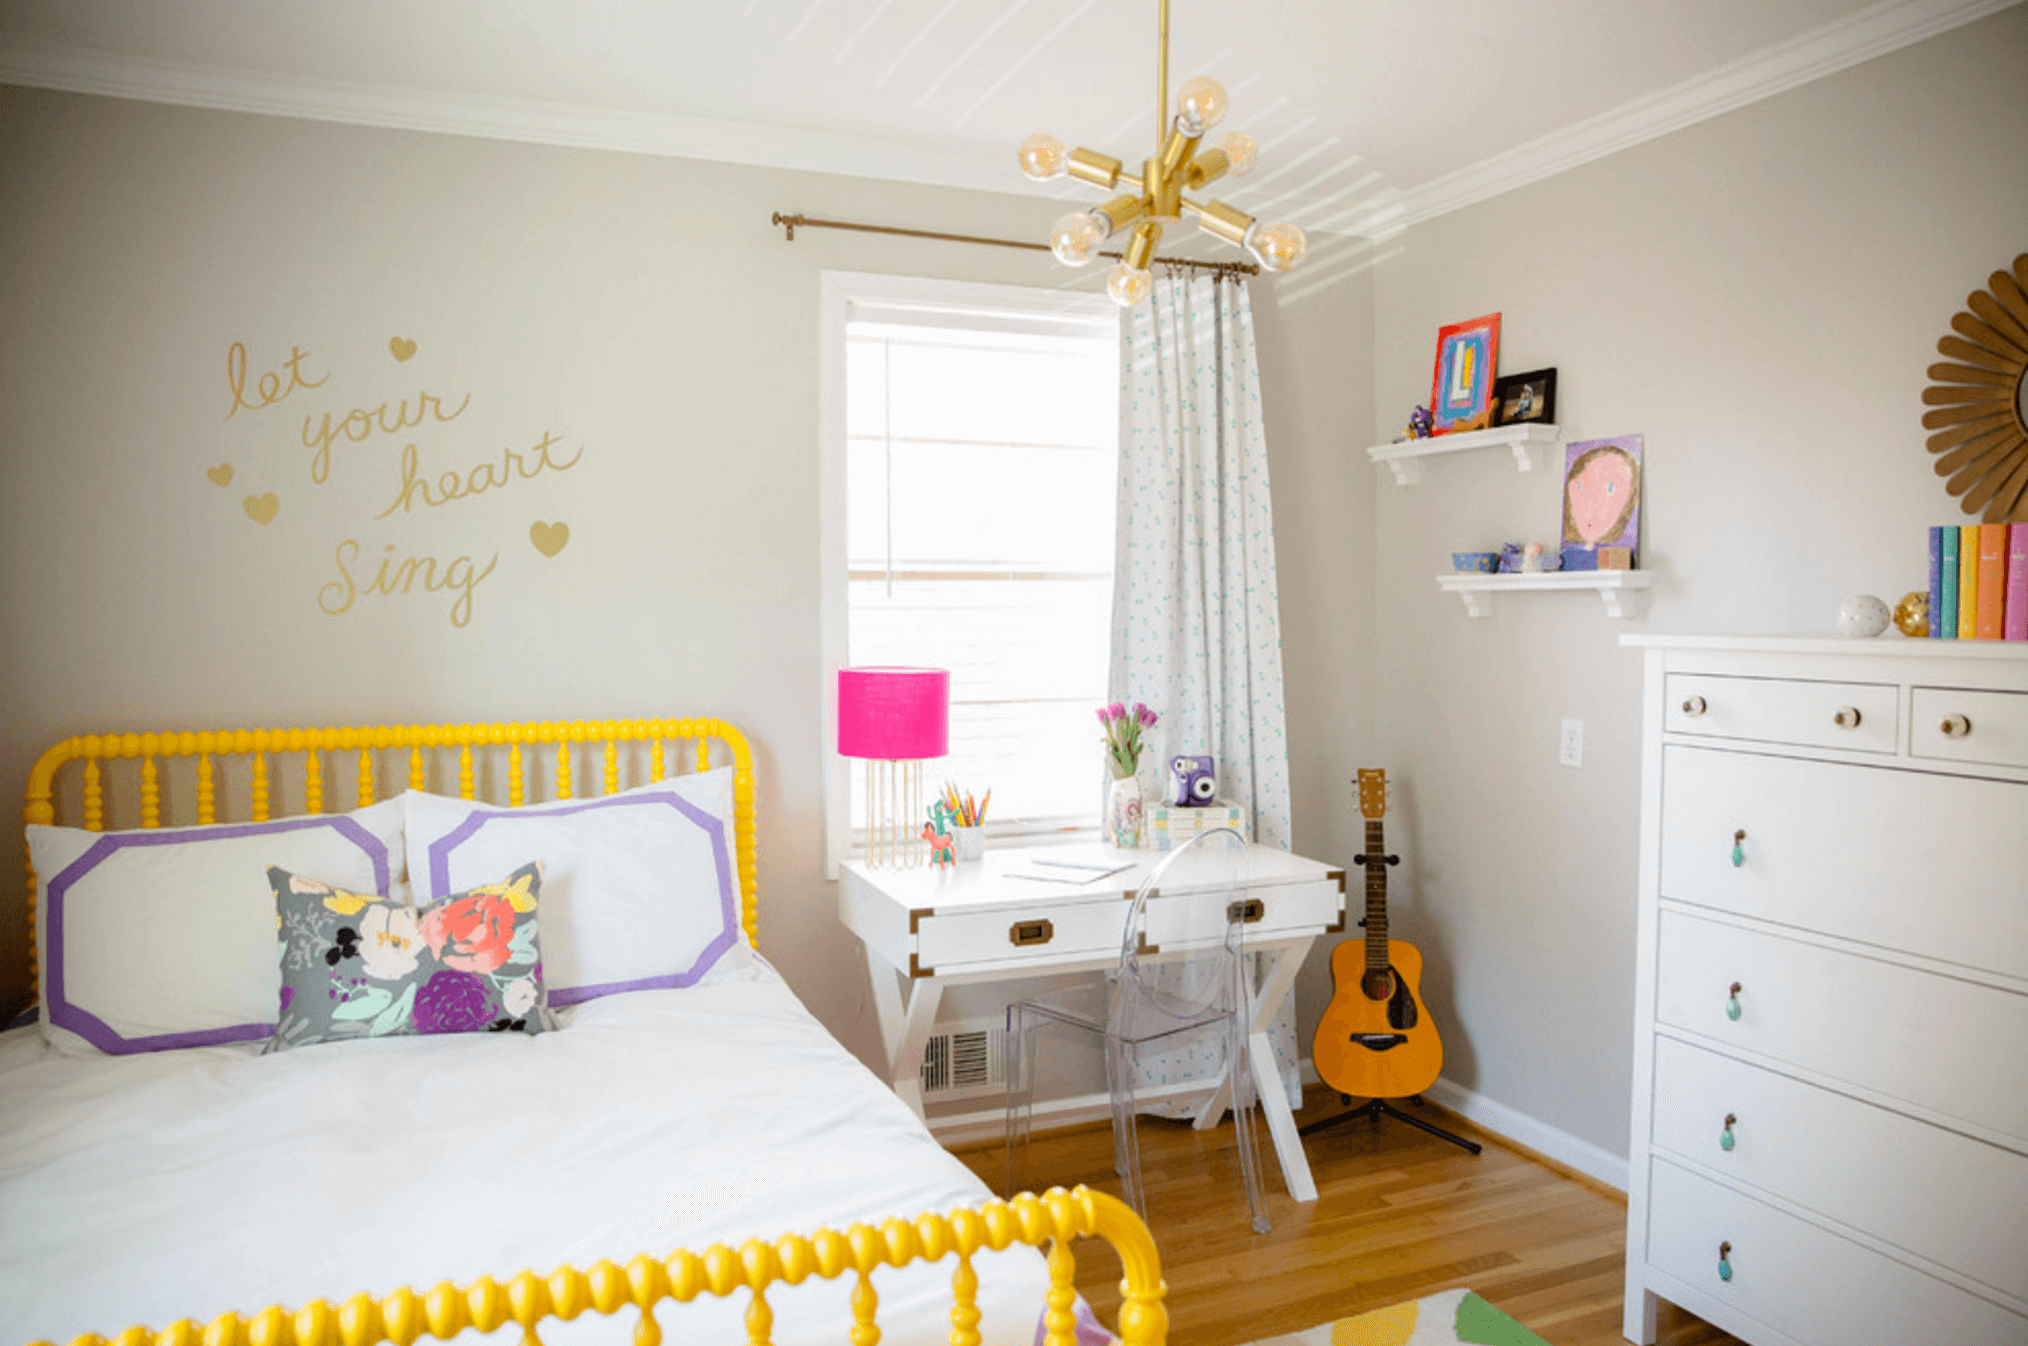 kids bedroom ideas 28 ideas for adding color to a kids room freshome com 174 281